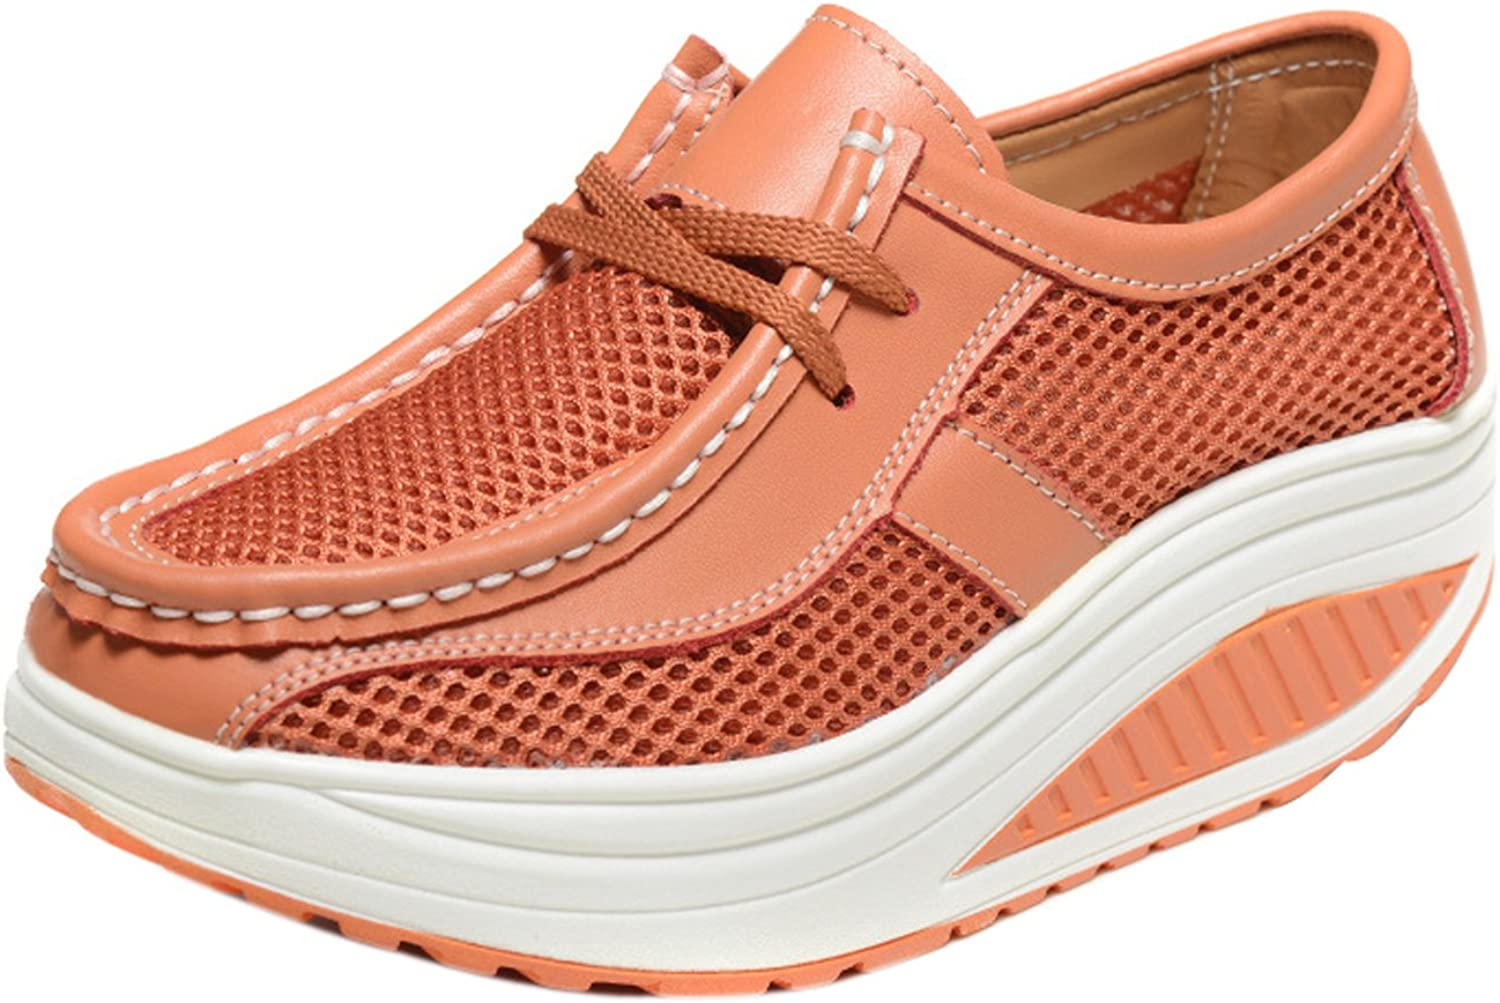 SK Studio Women's Walking Exercise Slip on Sneakers - Comfortable Fitness shoes